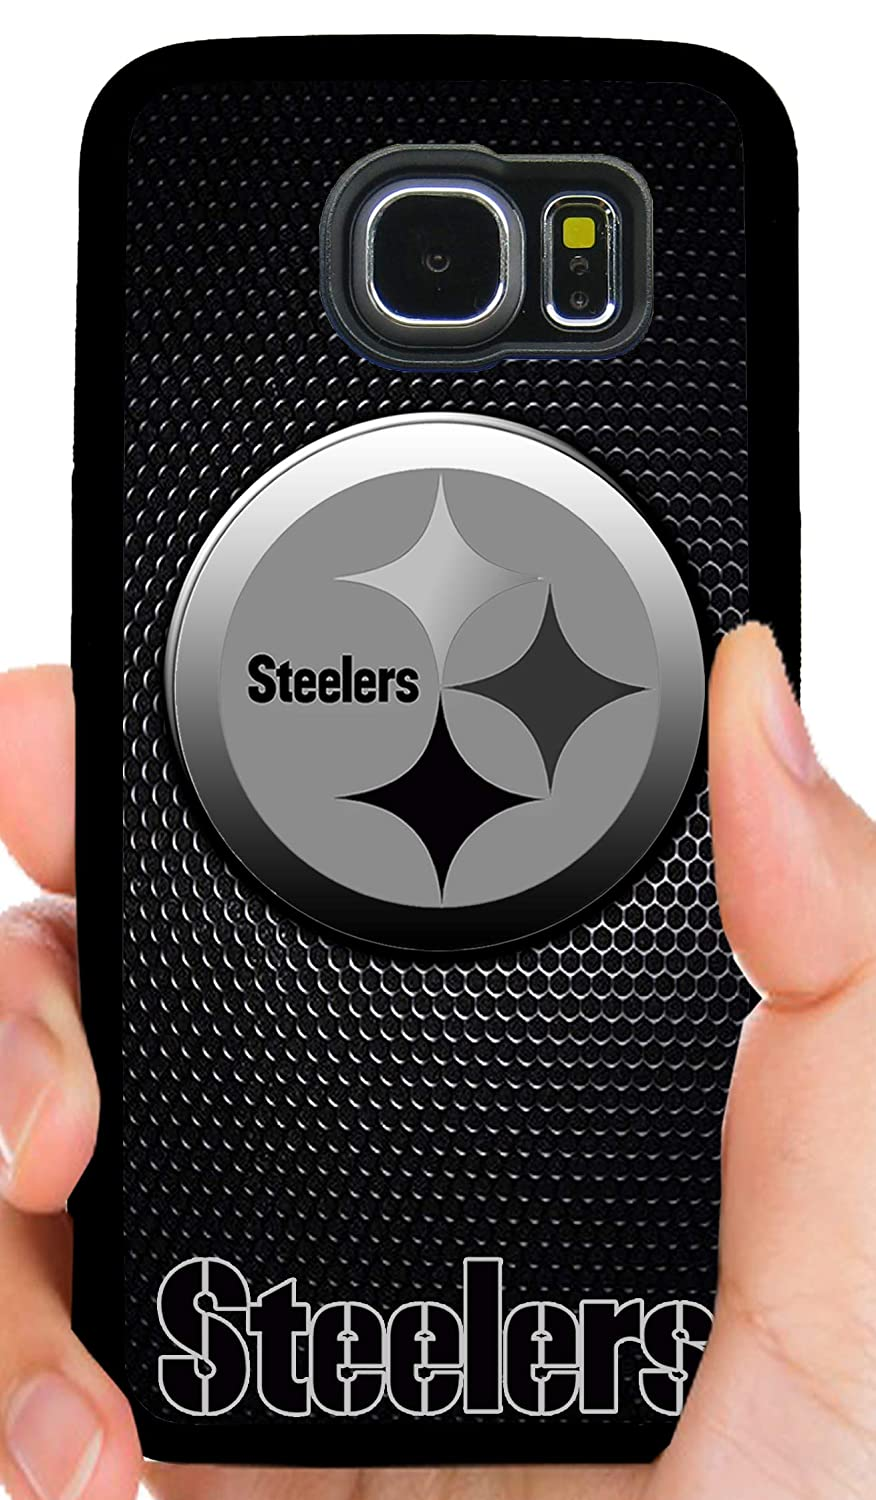 quality design b2938 e6786 Steelers Logo Blackout Football Phone Case Cover - Select Model